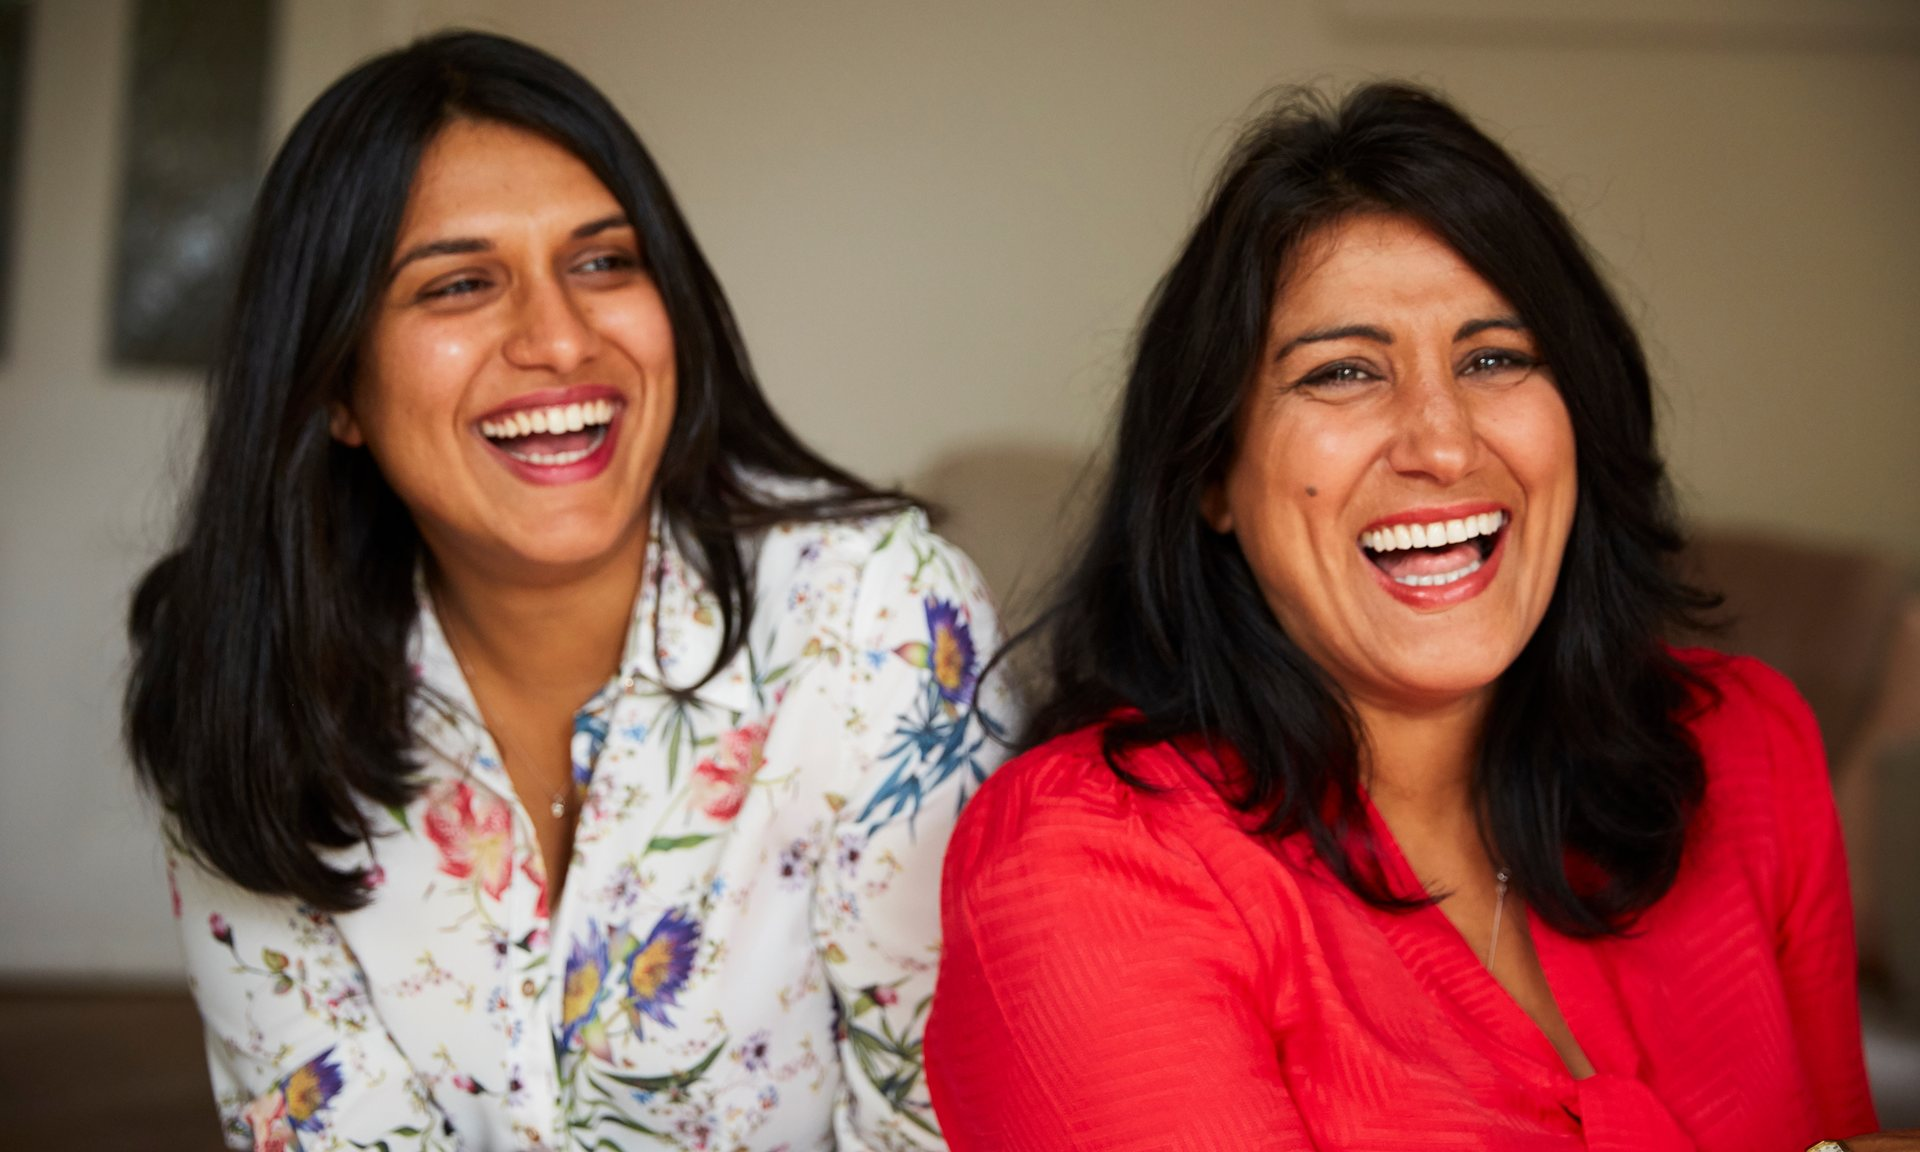 Jasvinder Sanghera (right), who refused a forced marriage as a teenager, with her daughter Natasha. Photograph: Christopher Thomond for the Guardian